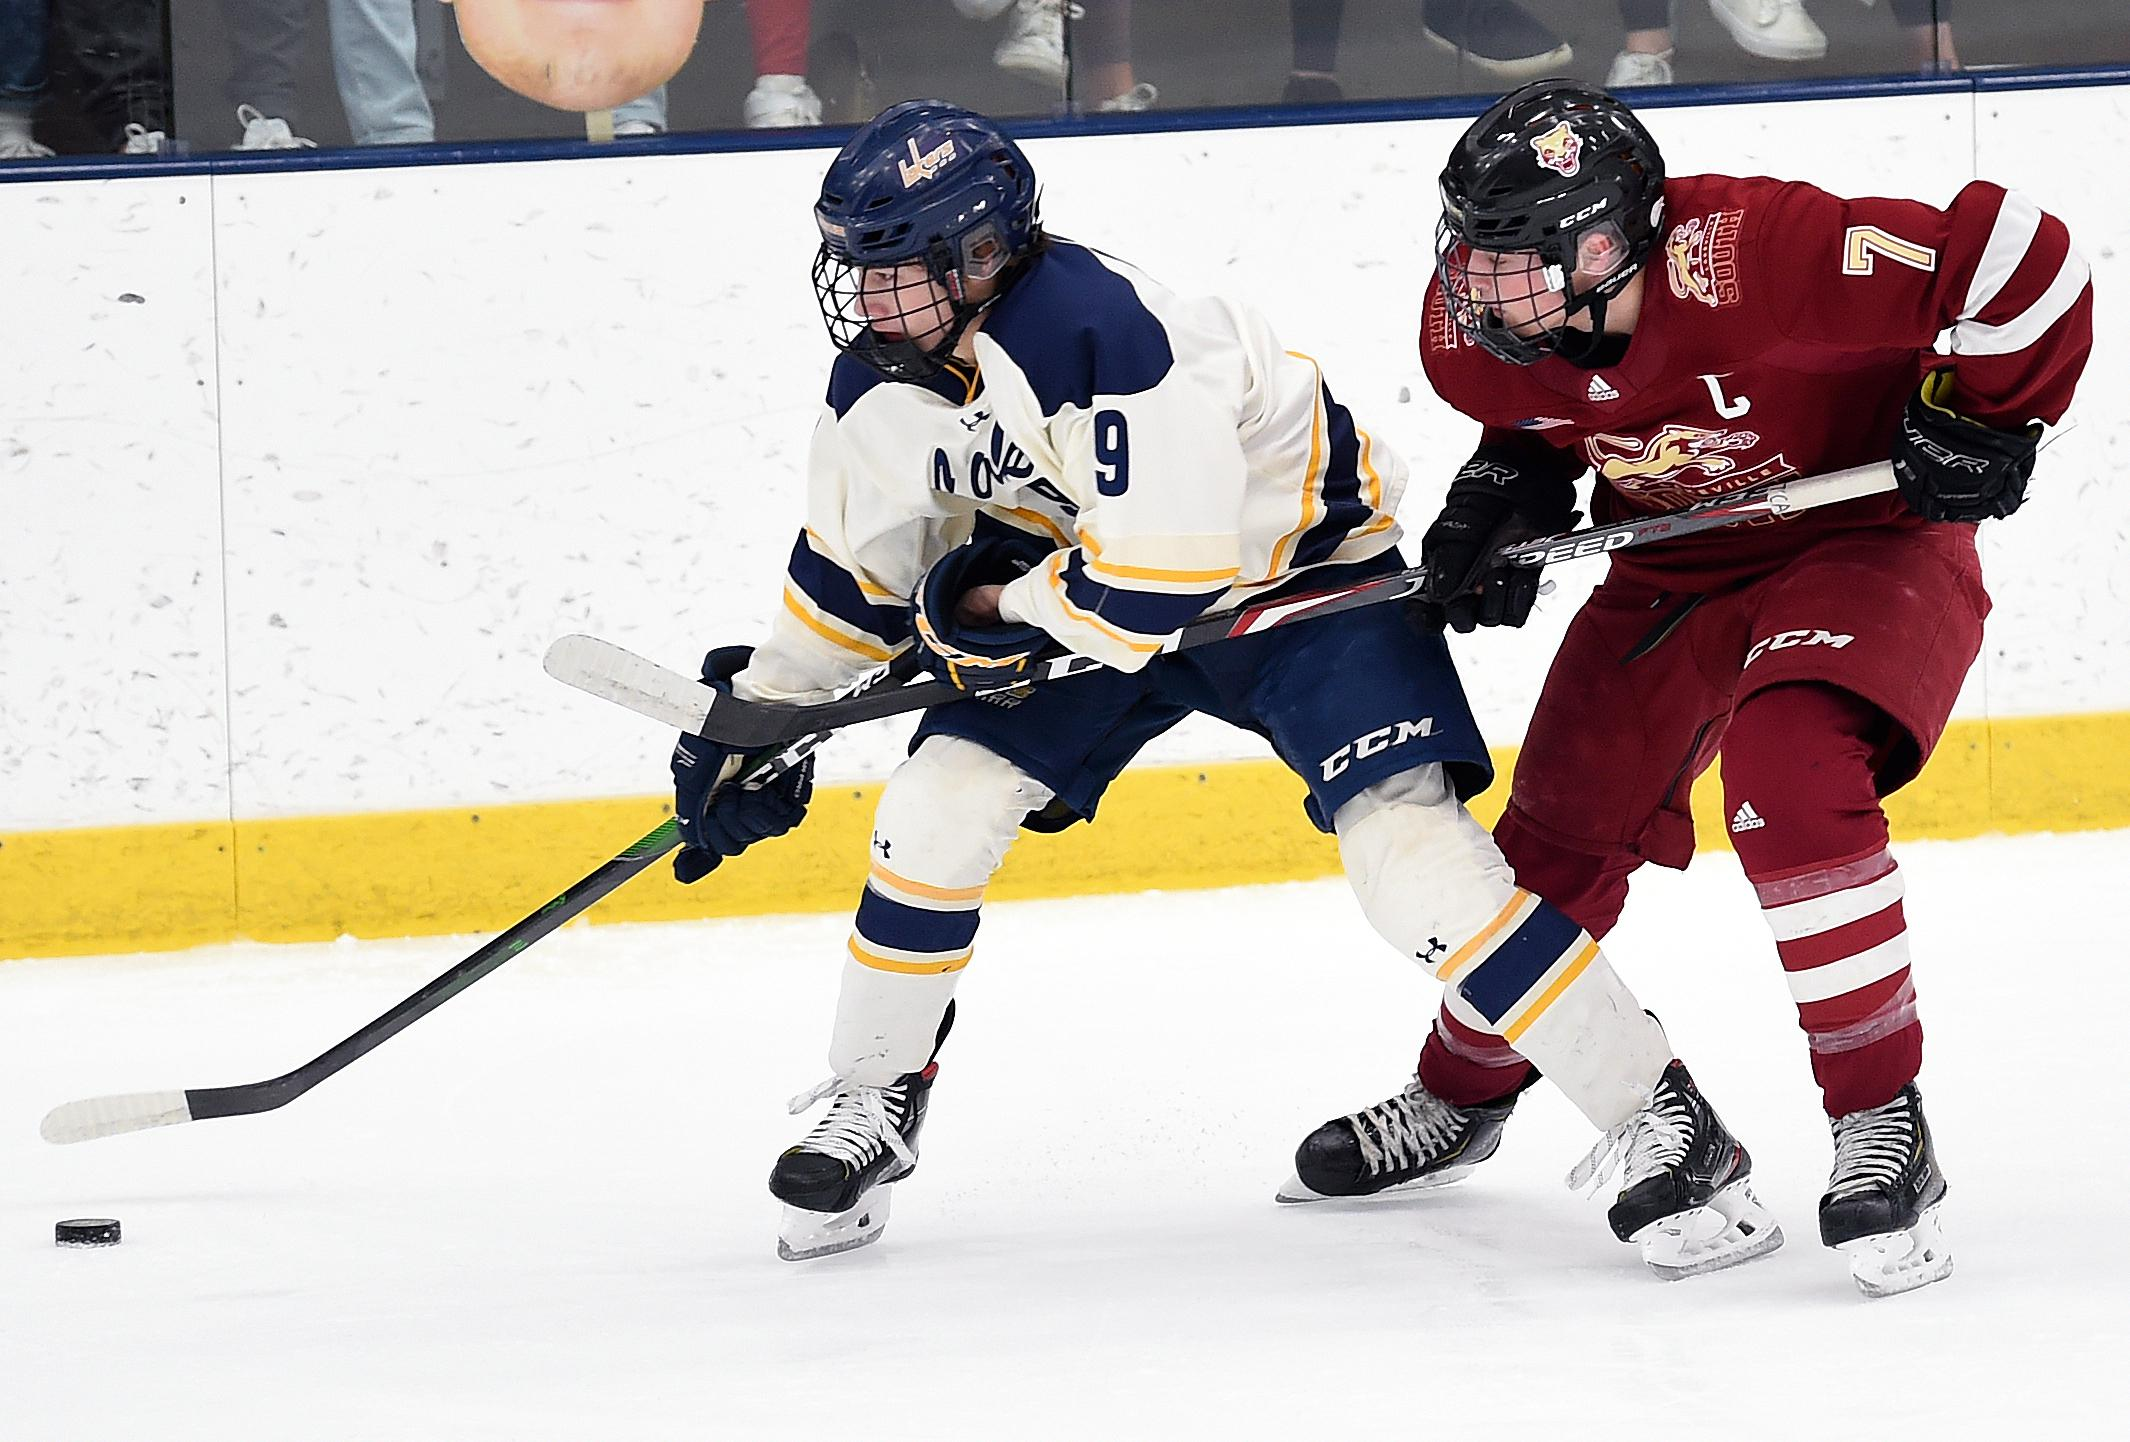 Prior Lake's Alex Bump, left, tries to shake loose from Lakeville South's Cade Ahrenholz during Saturday's game in Prior Lake. Photo by Loren Nelson, LegacyHockeyPhotography.com